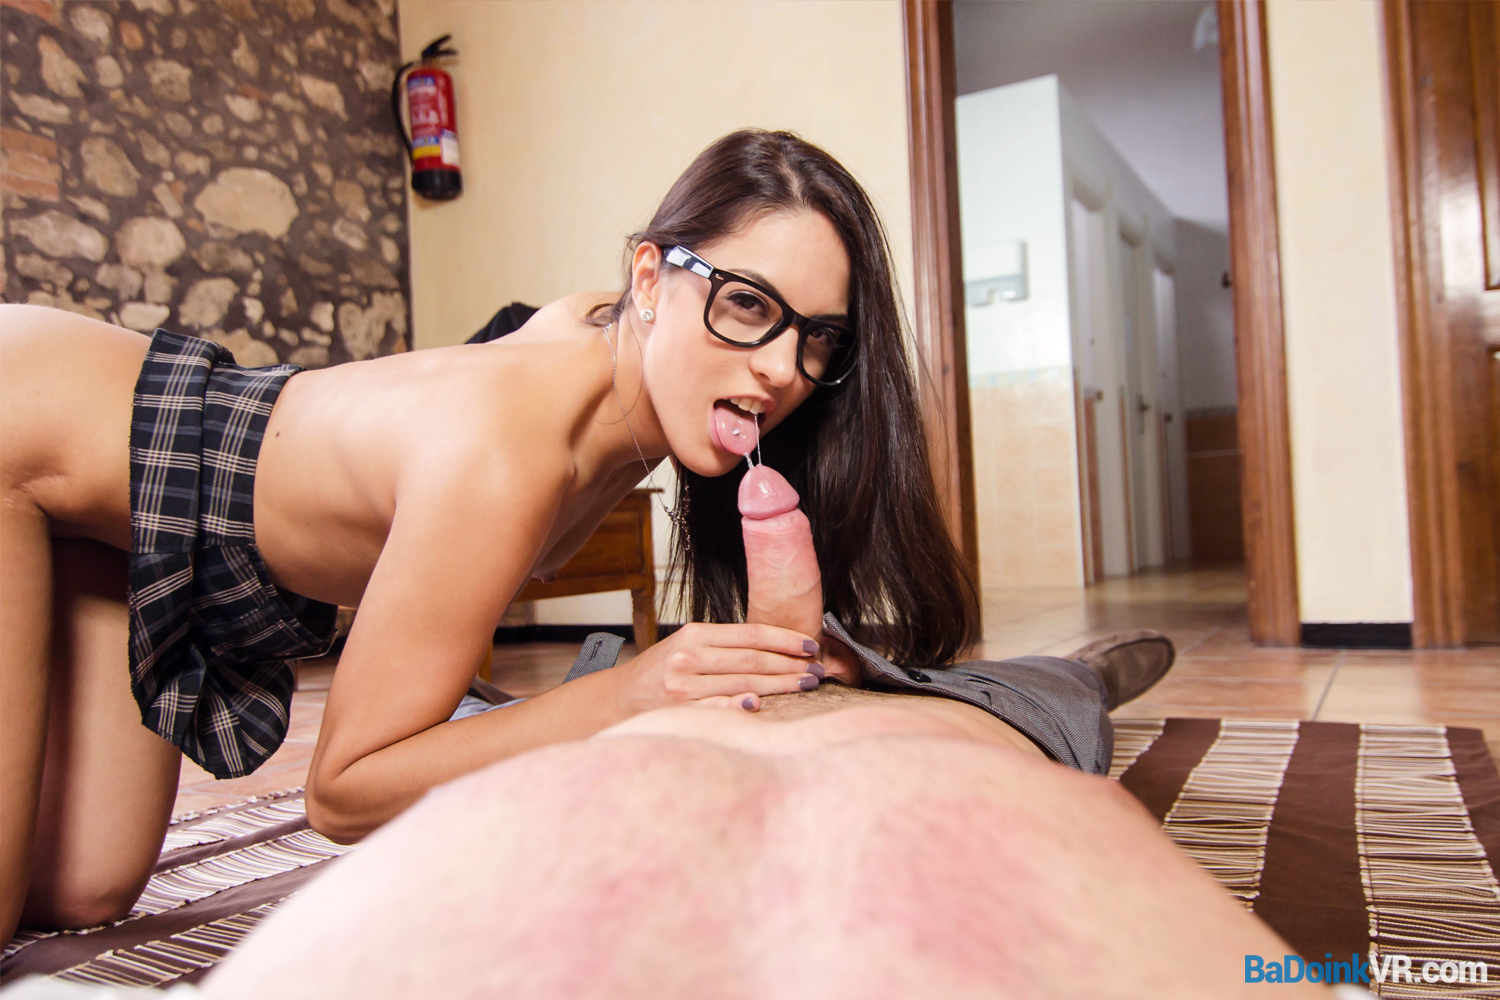 Naughty Video Porn naughty schoolgirl gets a cute glasses girl sex badoinkvr